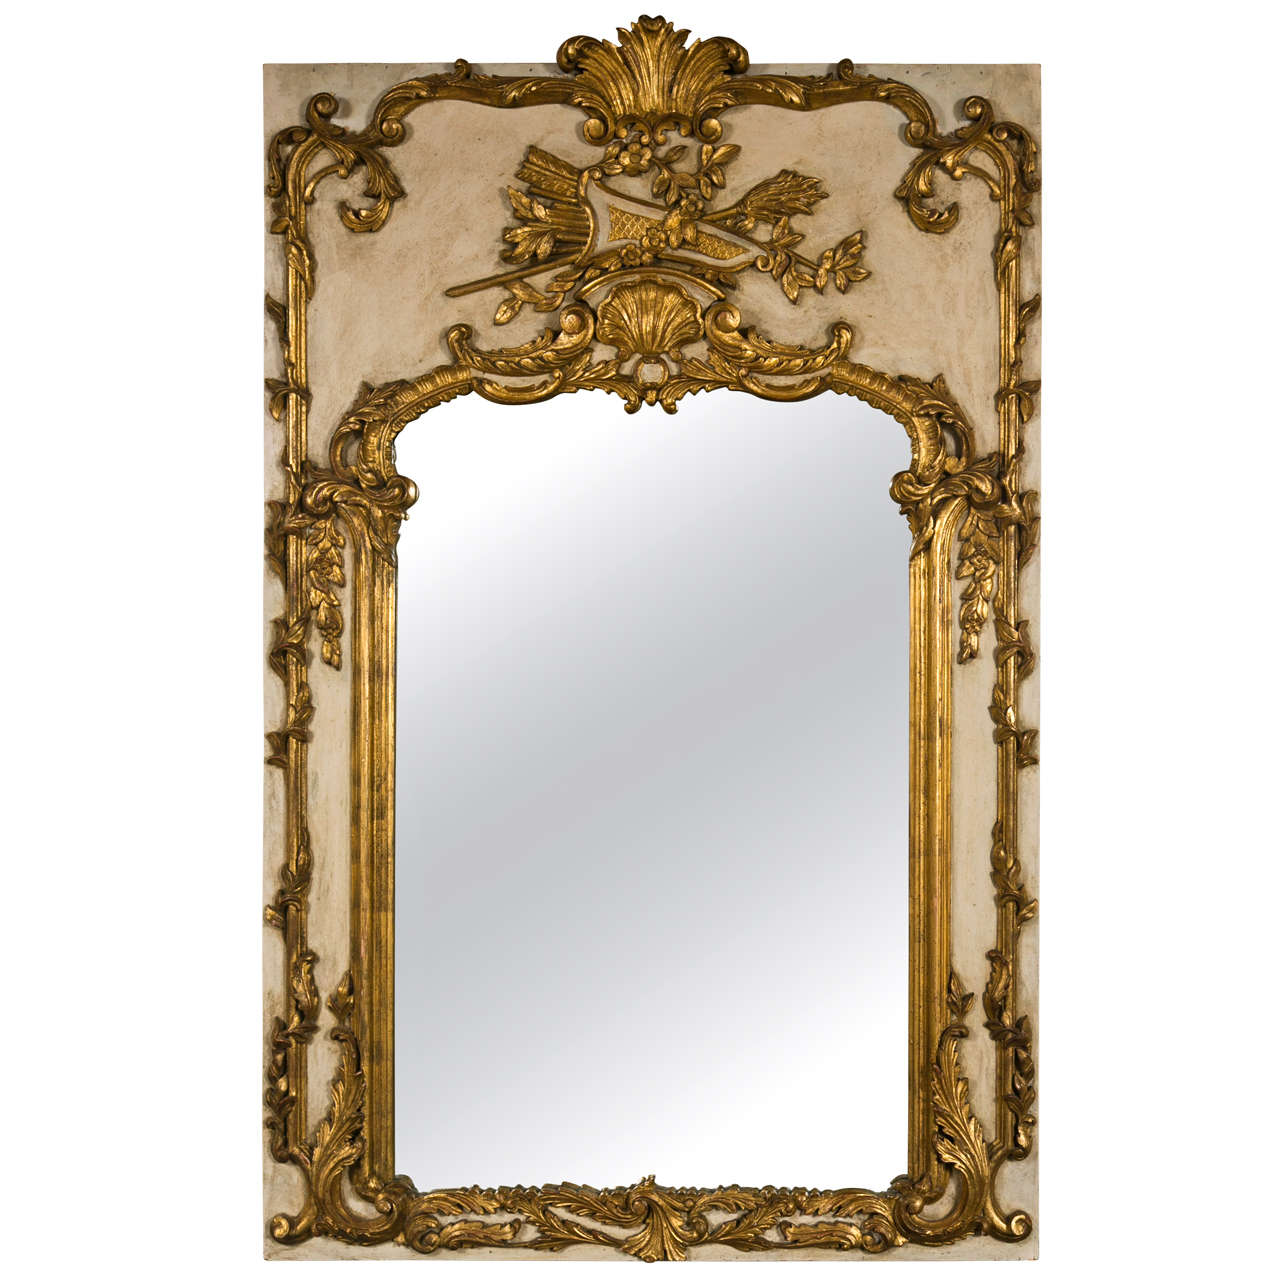 French rococo style painted mirror at 1stdibs for French rococo period